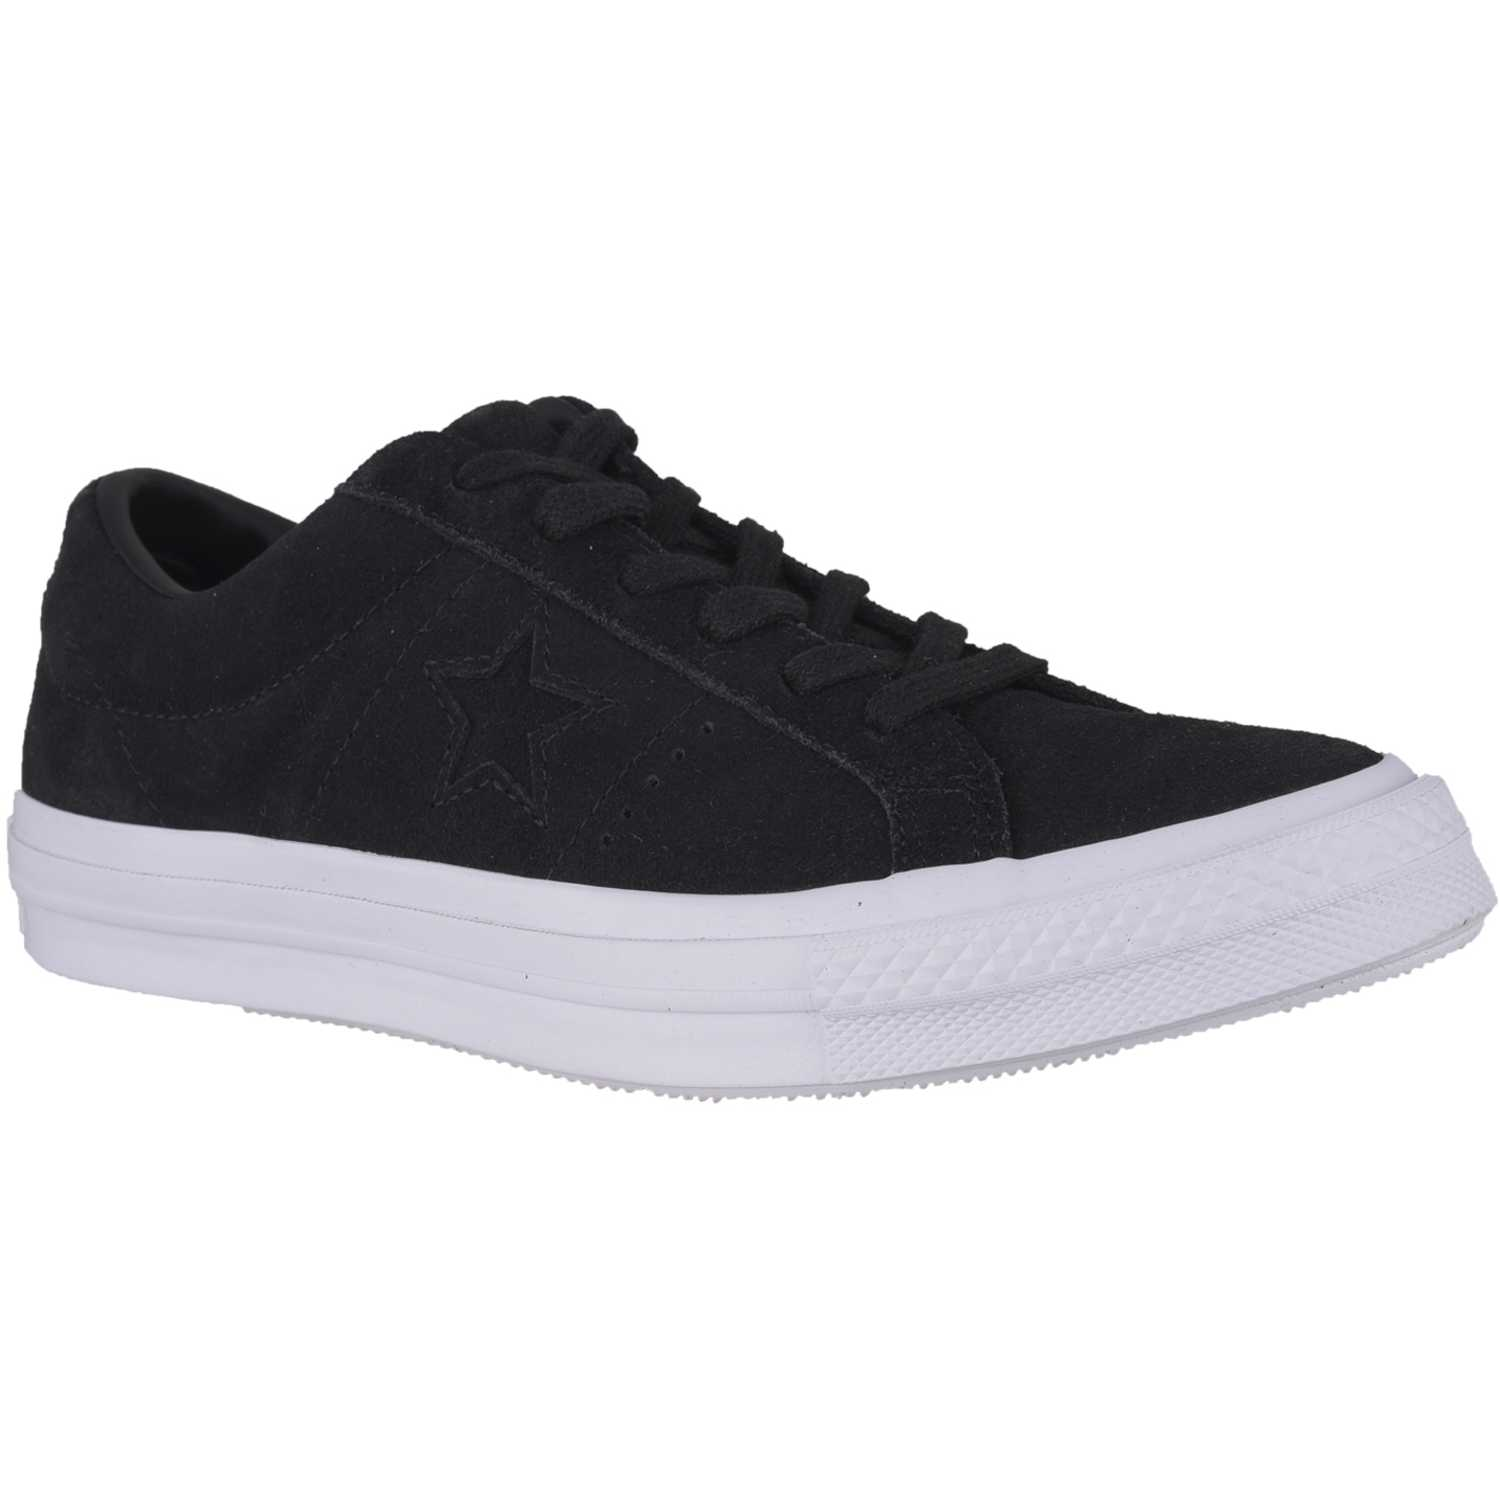 Converse one star suede Negro / blanco Walking